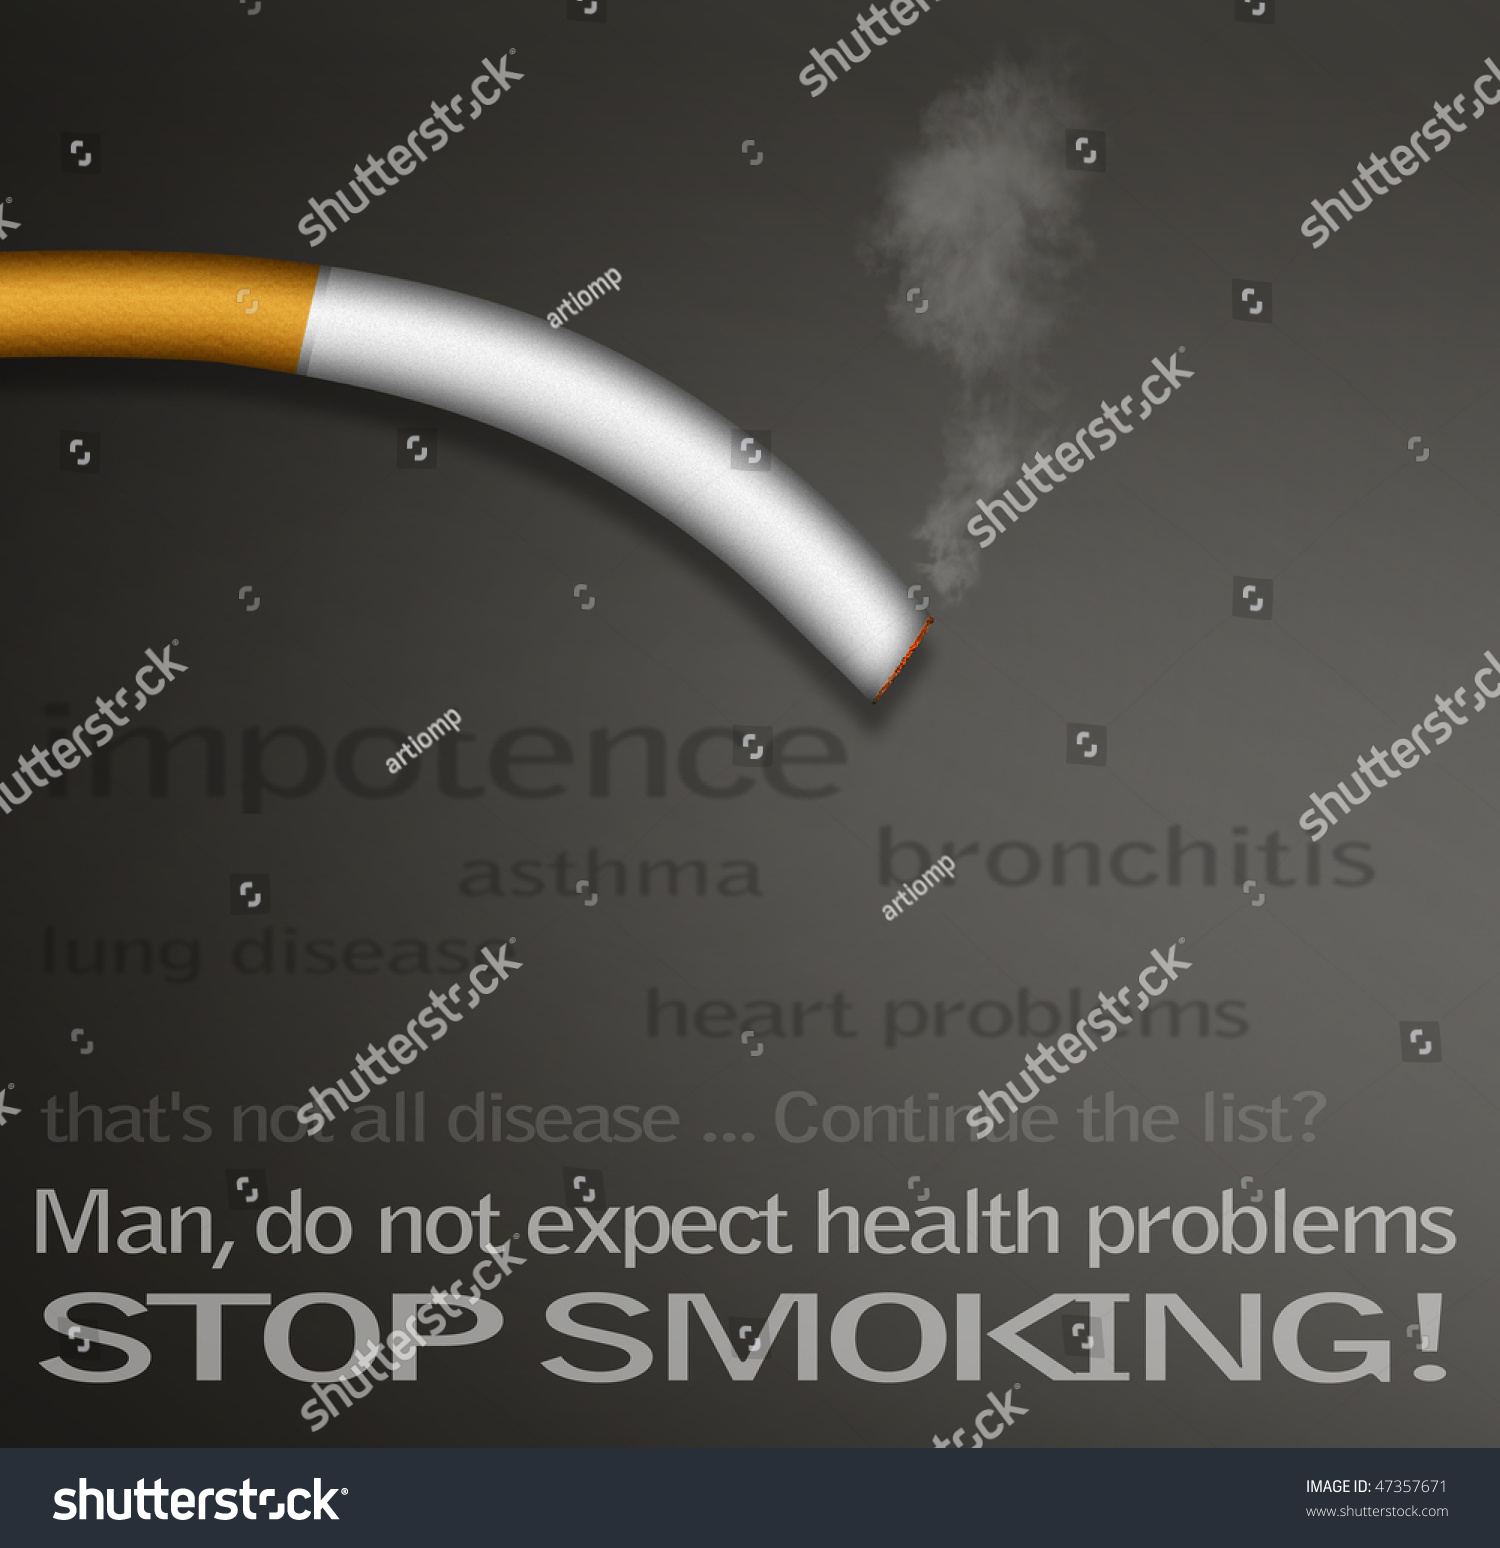 stop smoking campaign posters with a list of diseases